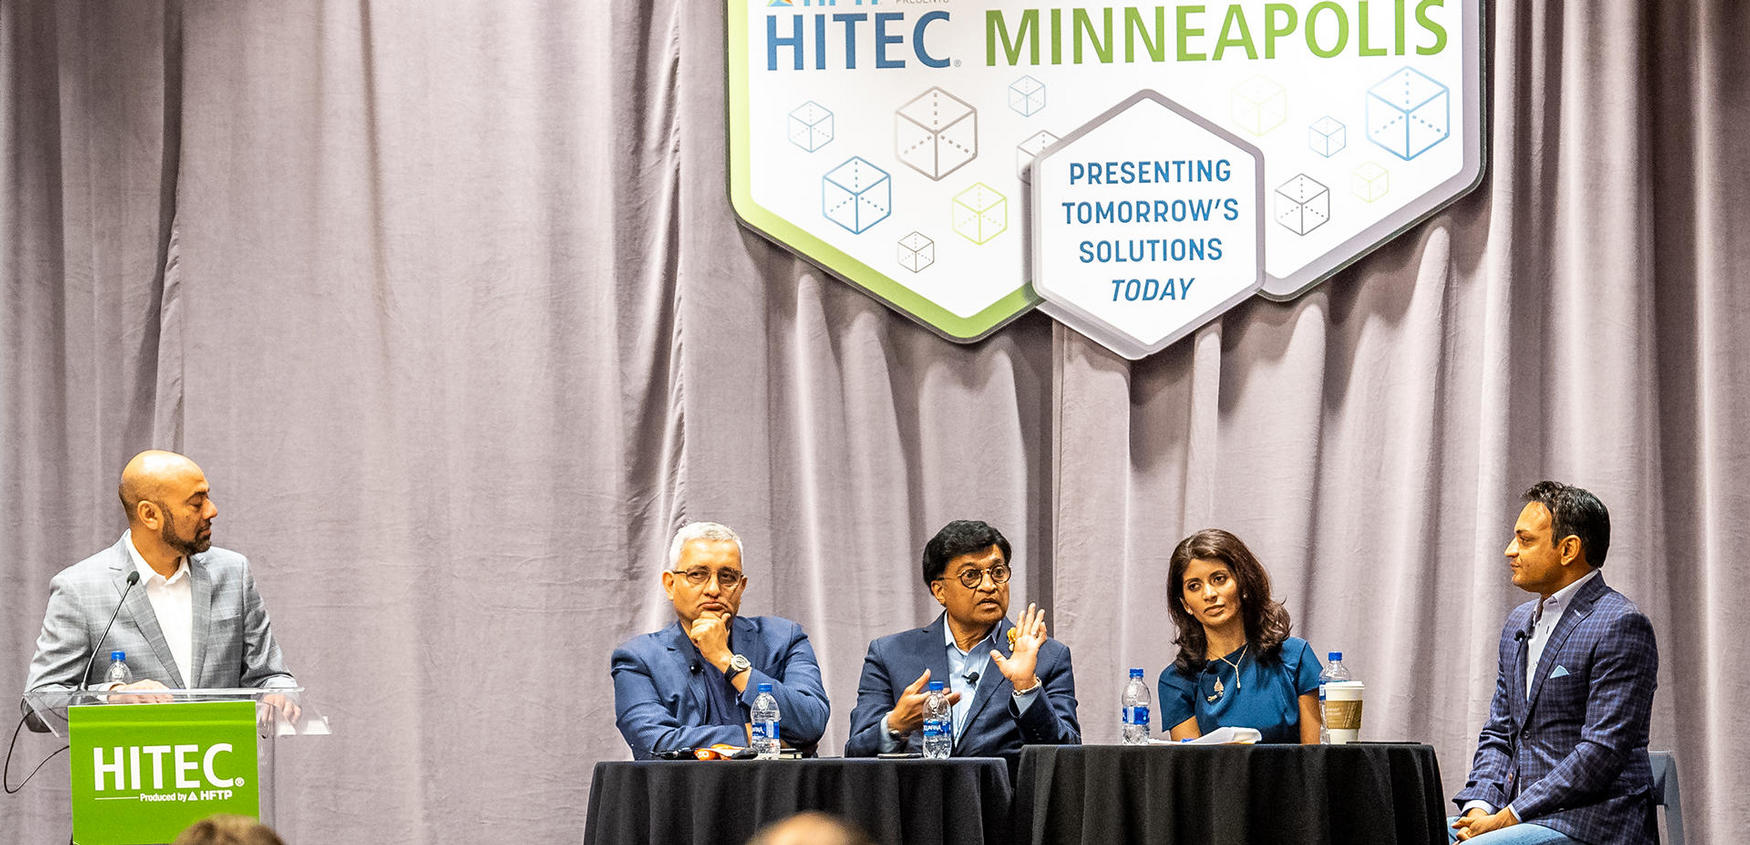 News and press info for HITEC hospitality technology event